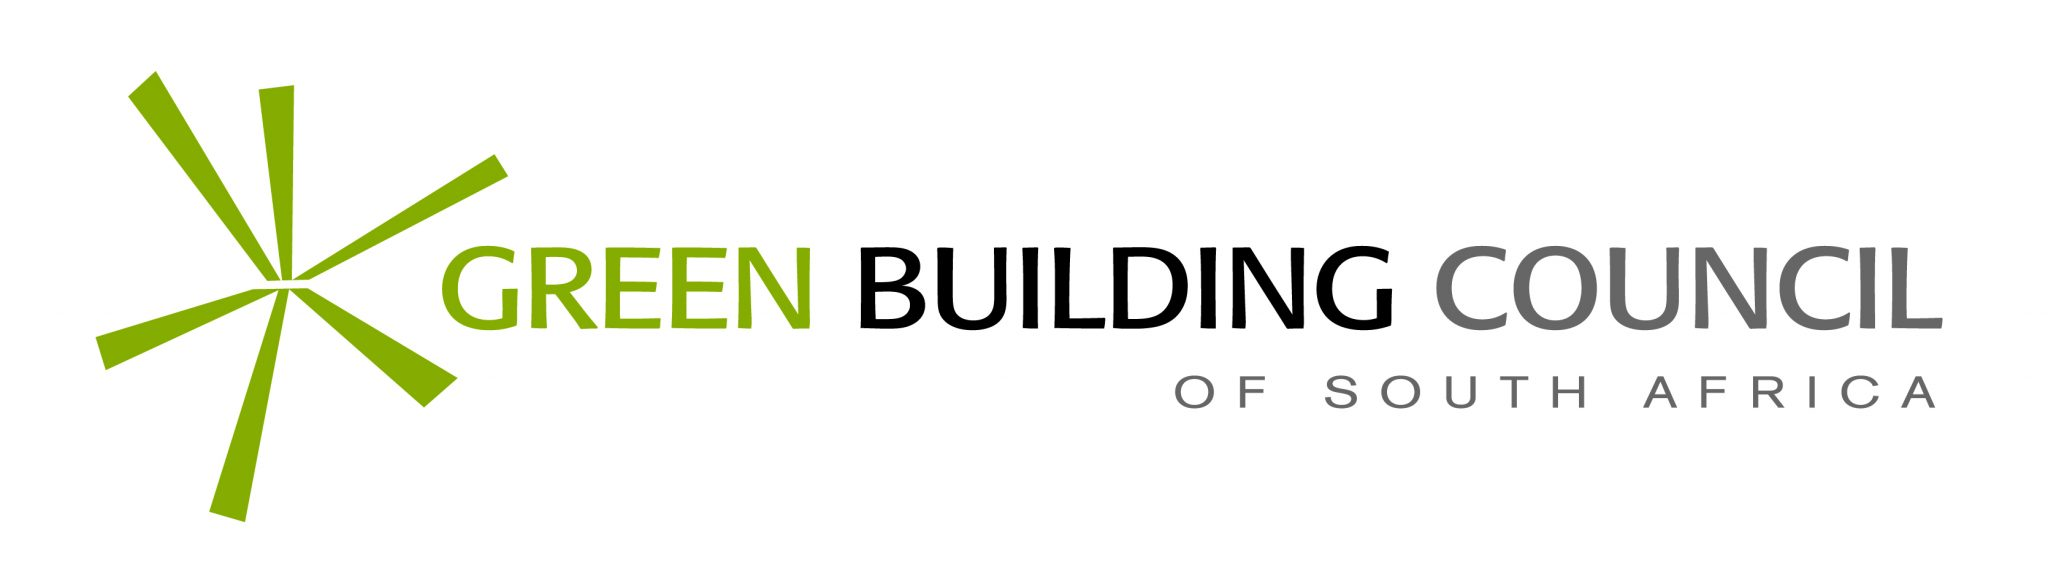 Green Building Council of South Africa